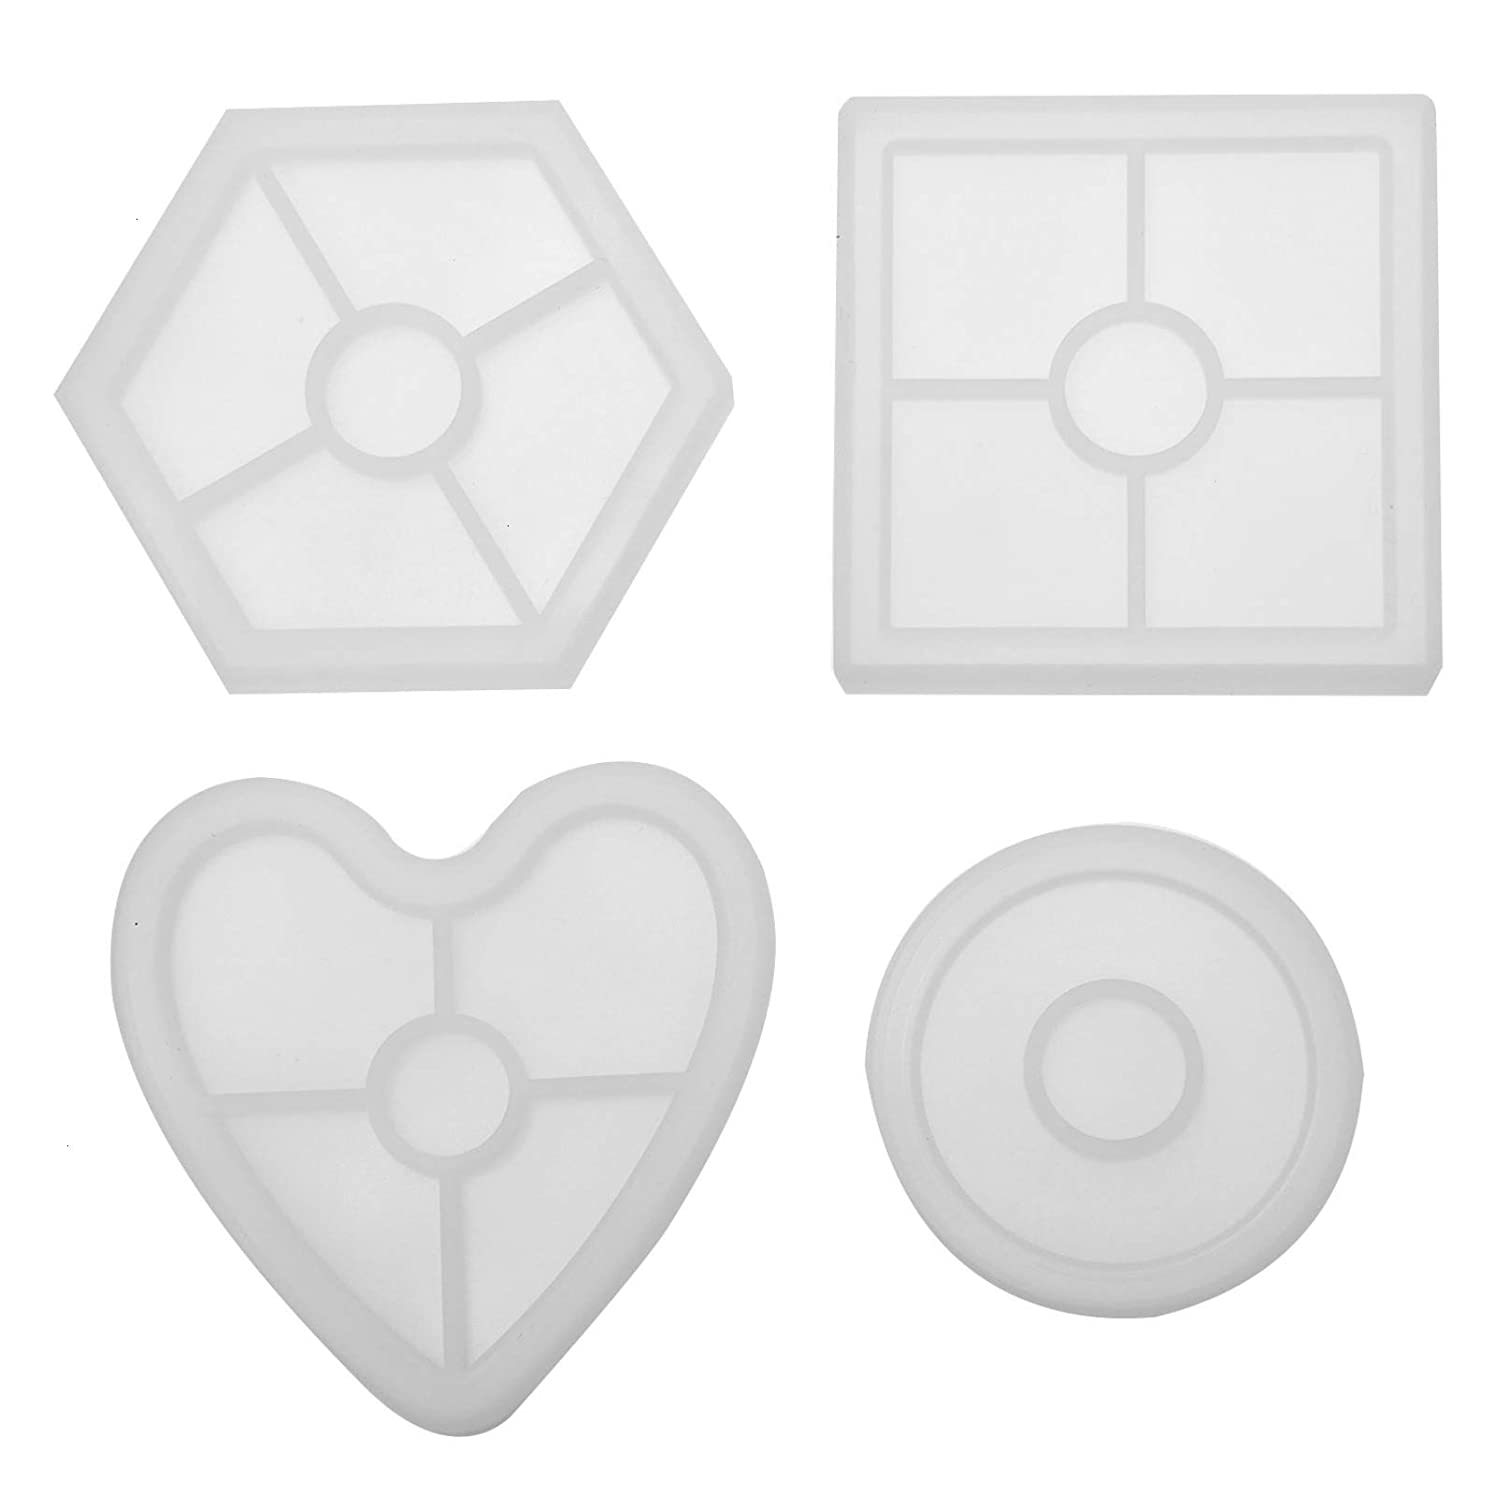 Timoo 4 Pcs Silicone Coaster Molds, Epoxy Resin Casting Molds for DIY Coasters, Craft Project (Round, Hexagon, Square, Heart Shape)